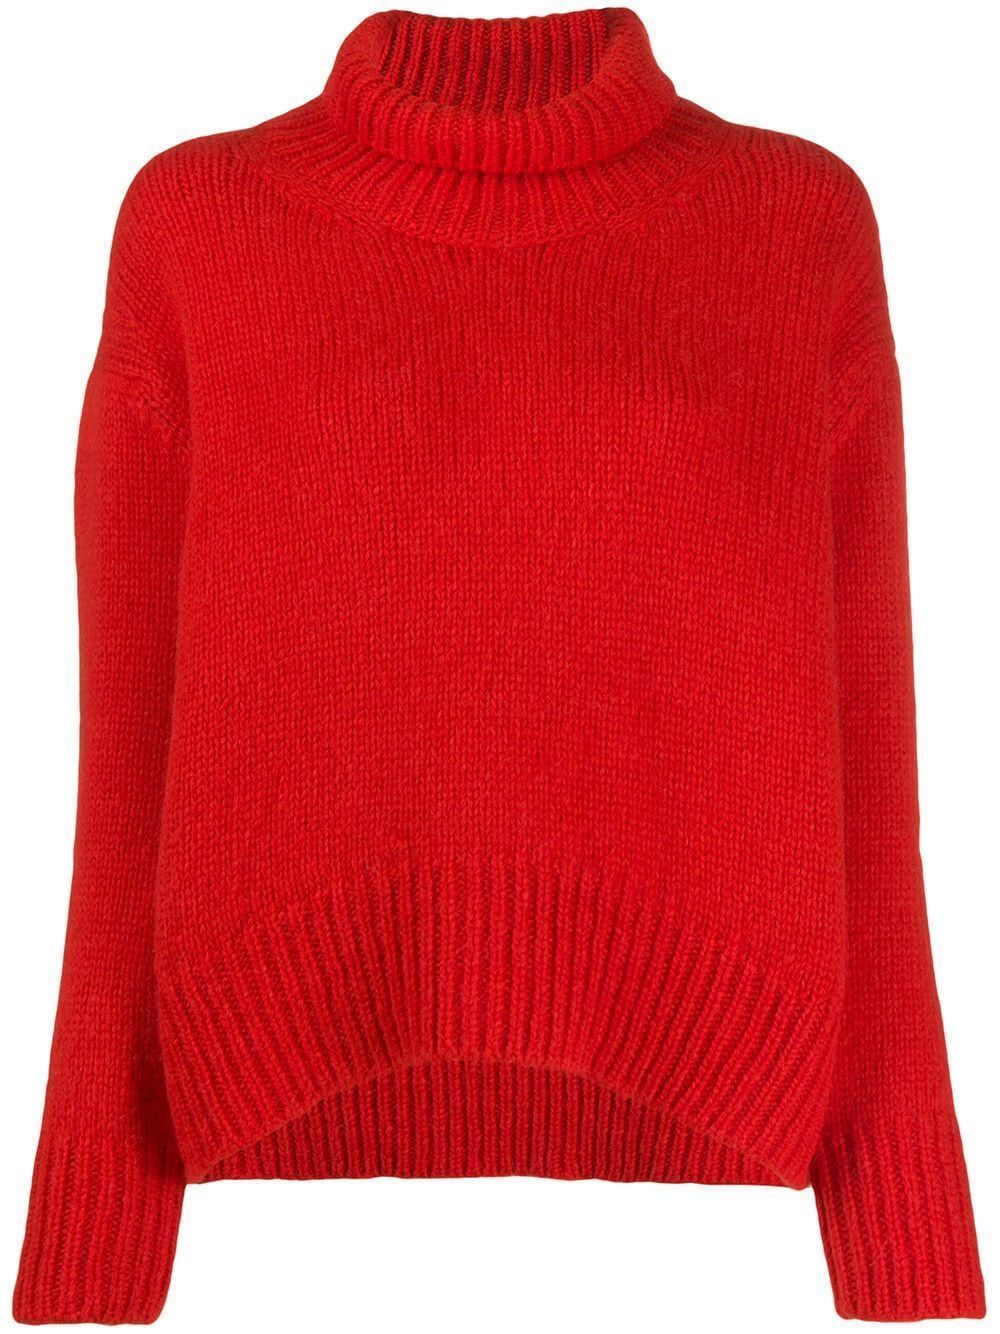 Ermanno Scervino Chunky Knit Jumper #chunkyknitjumper Ermanno Scervino chunky knit jumper - Red #chunkyknitjumper Ermanno Scervino Chunky Knit Jumper #chunkyknitjumper Ermanno Scervino chunky knit jumper - Red #chunkyknitjumper Ermanno Scervino Chunky Knit Jumper #chunkyknitjumper Ermanno Scervino chunky knit jumper - Red #chunkyknitjumper Ermanno Scervino Chunky Knit Jumper #chunkyknitjumper Ermanno Scervino chunky knit jumper - Red #chunkyknitjumper Ermanno Scervino Chunky Knit Jumper #chunkyk #chunkyknitjumper